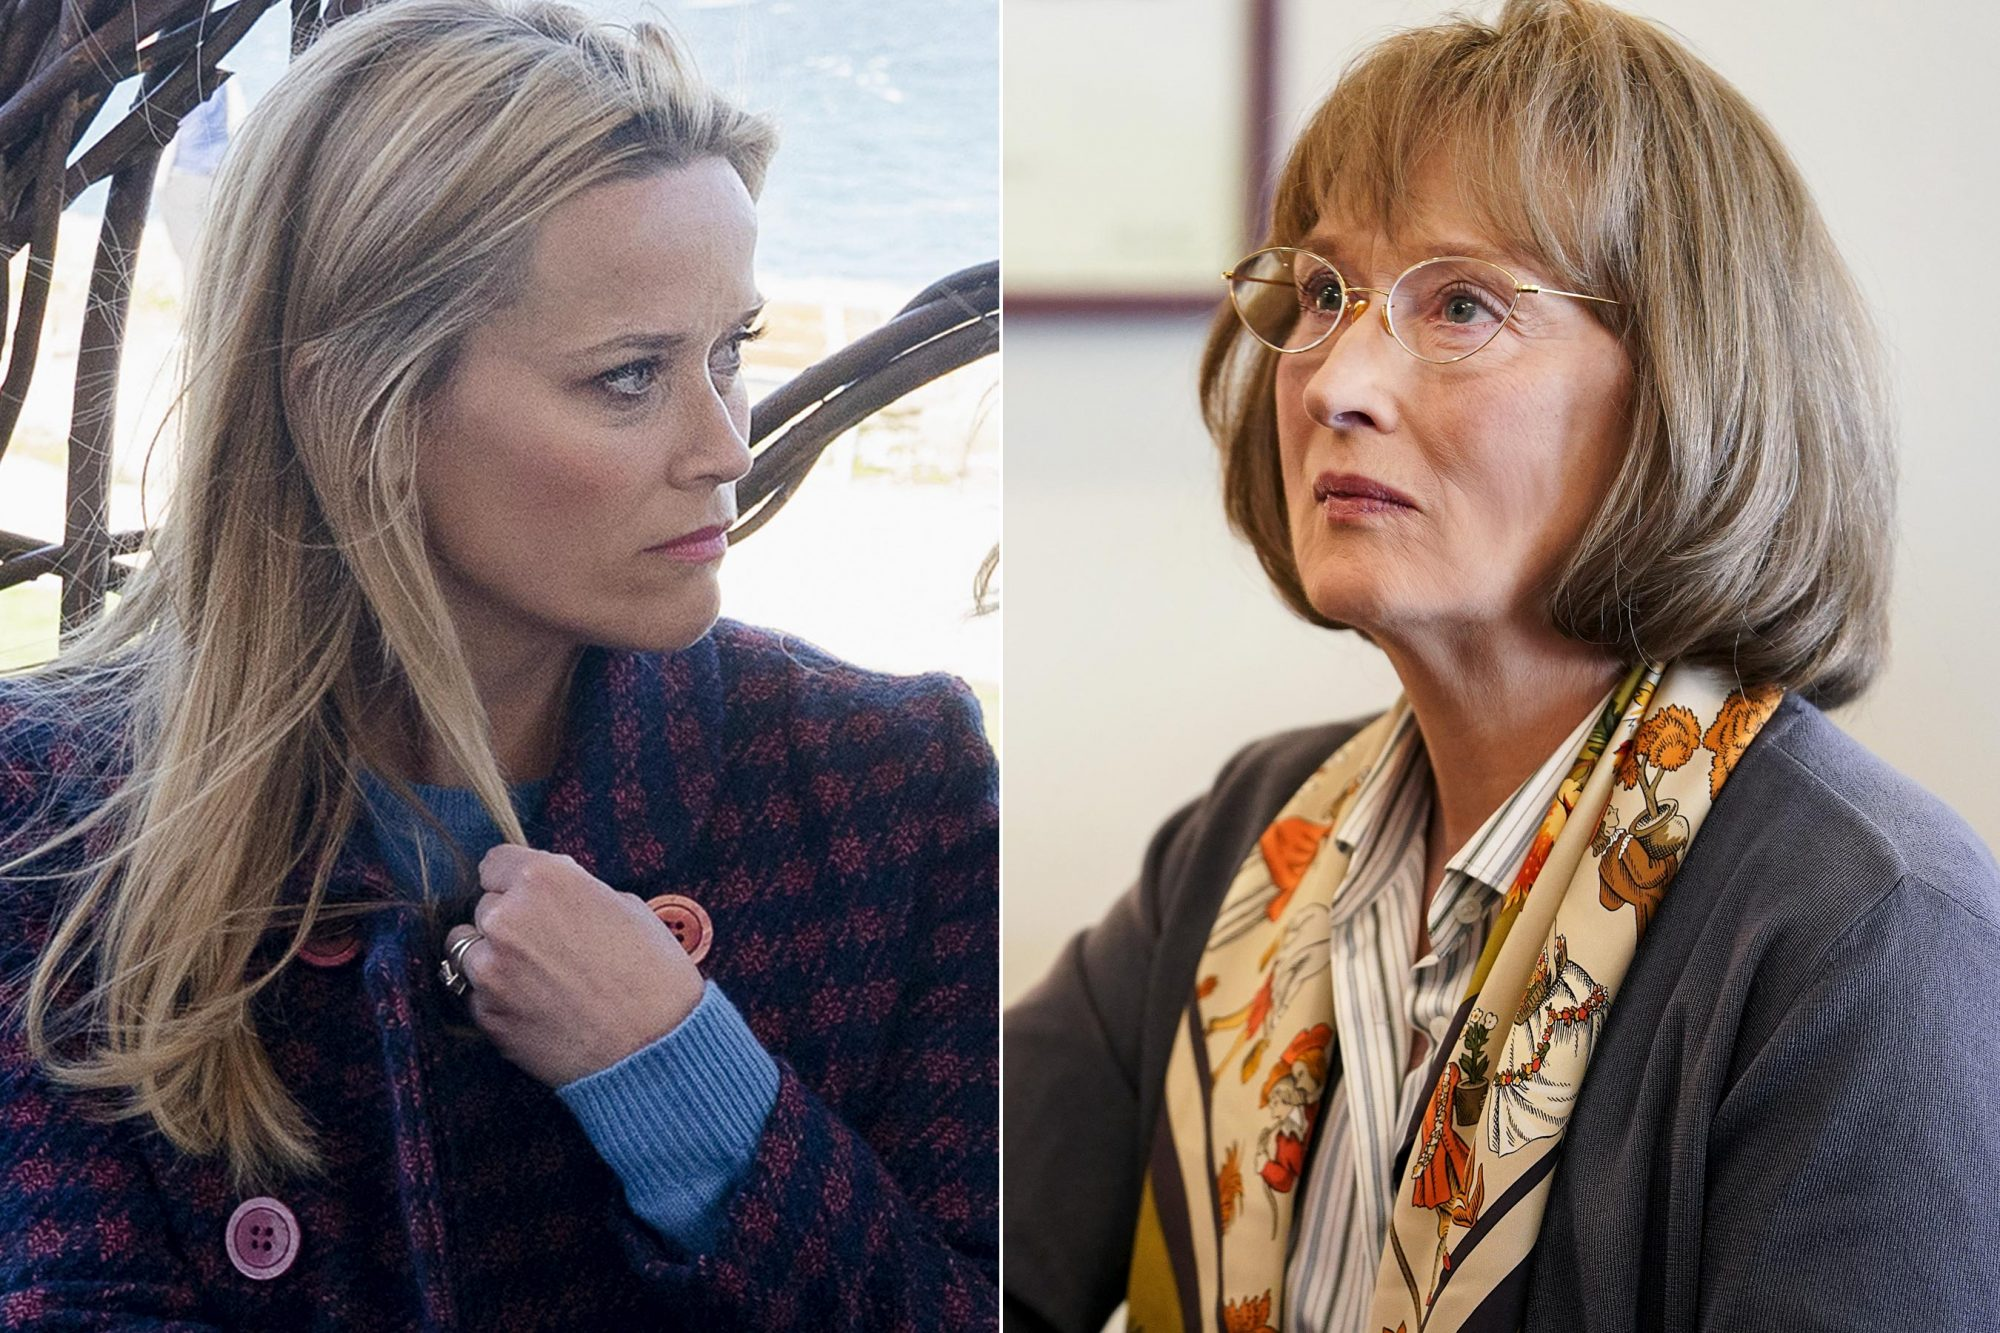 Big Little Lies Season 2 Reese Witherspoon photo: Jennifer Clasen/HBO Big Little Lies Season 2 Meryl Streep. photo: Jennifer Clasen/HBO